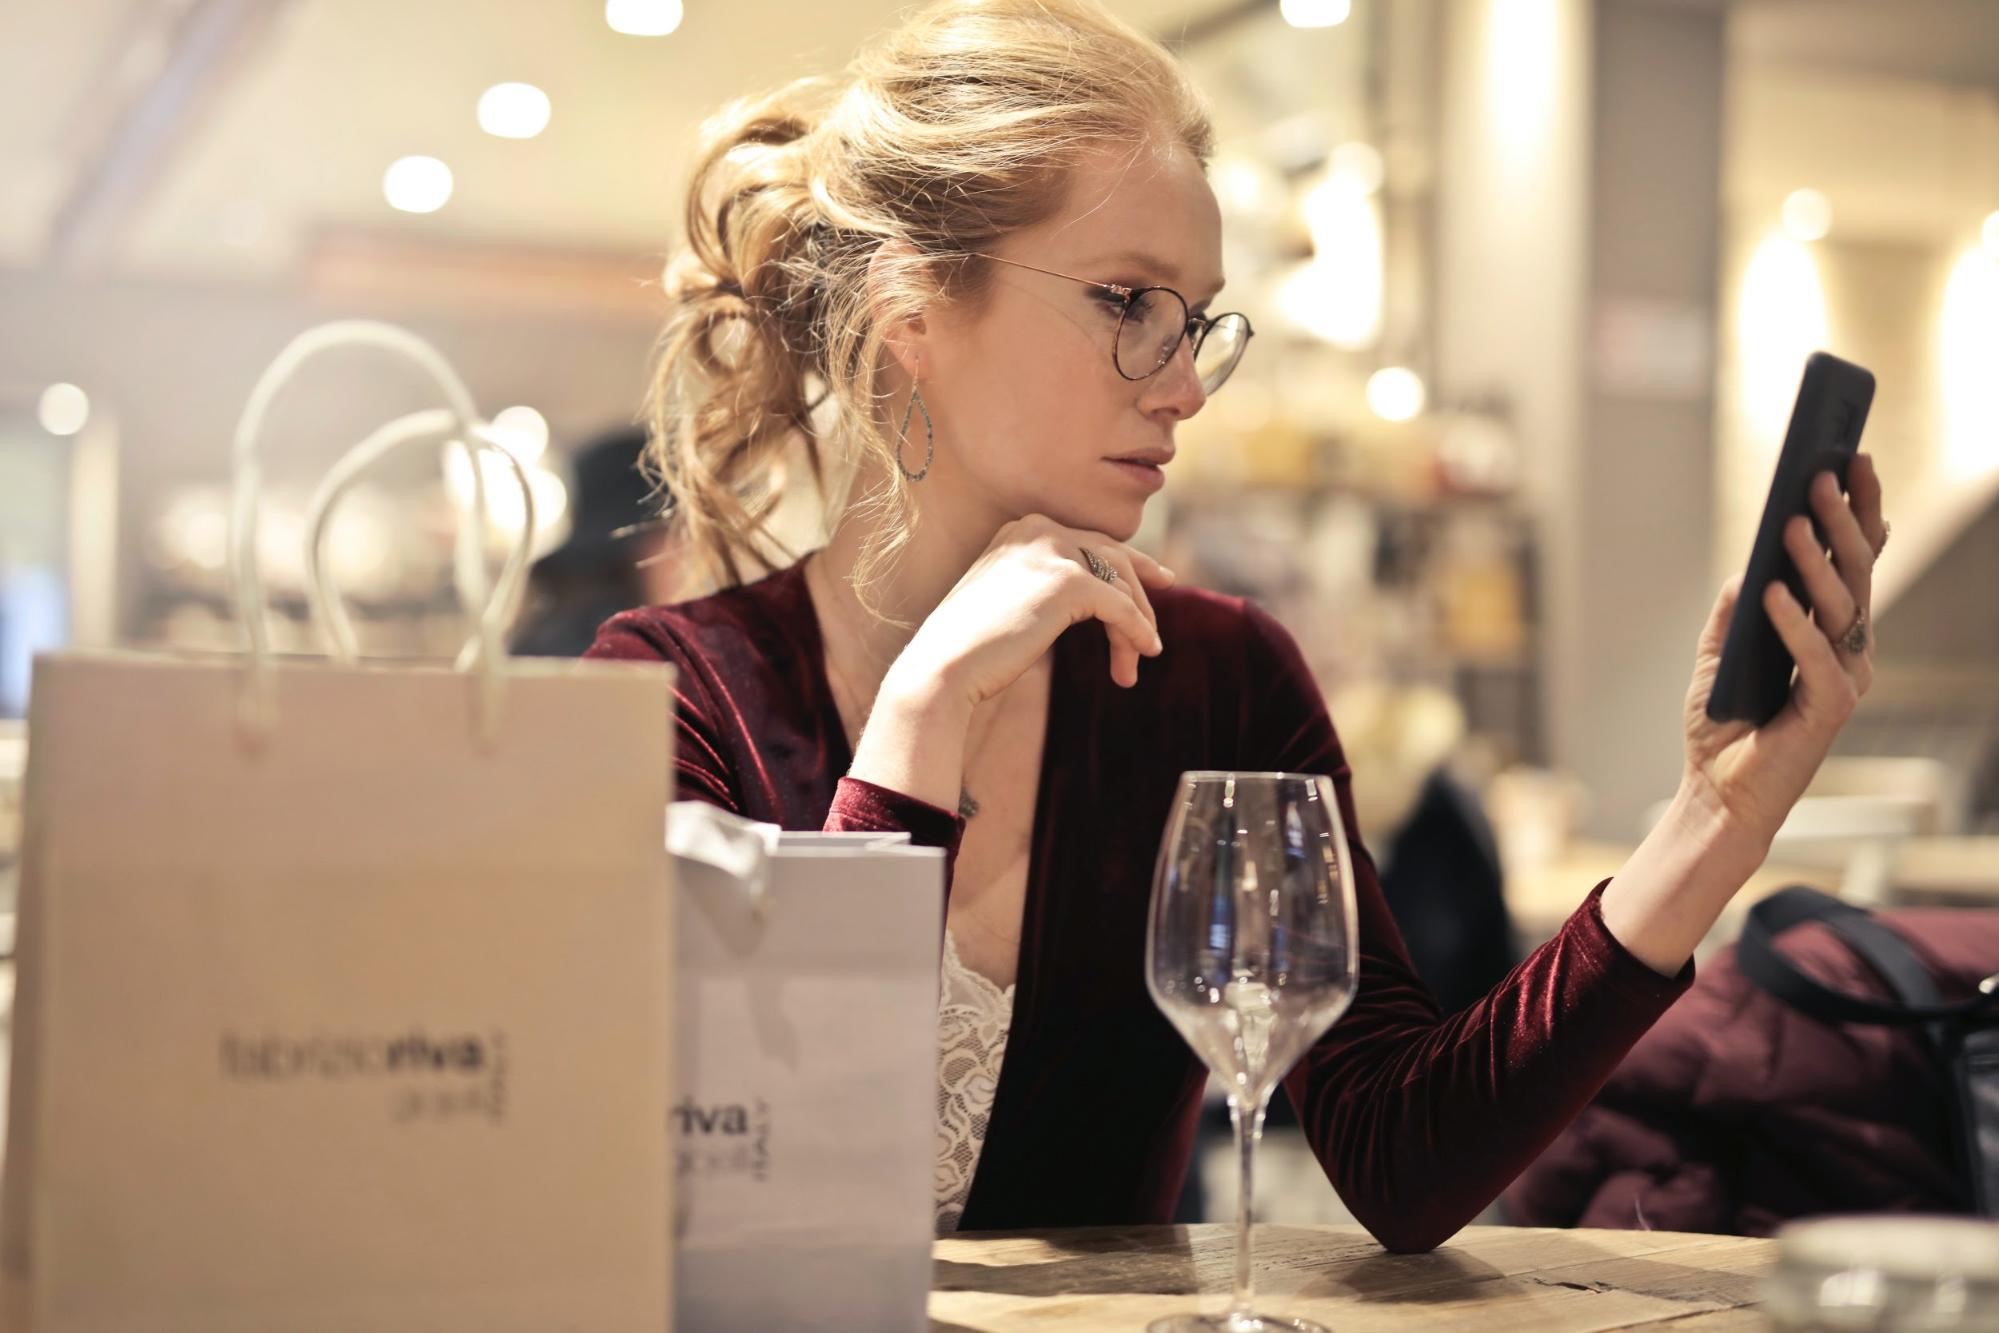 woman looking at phone with shopping bags